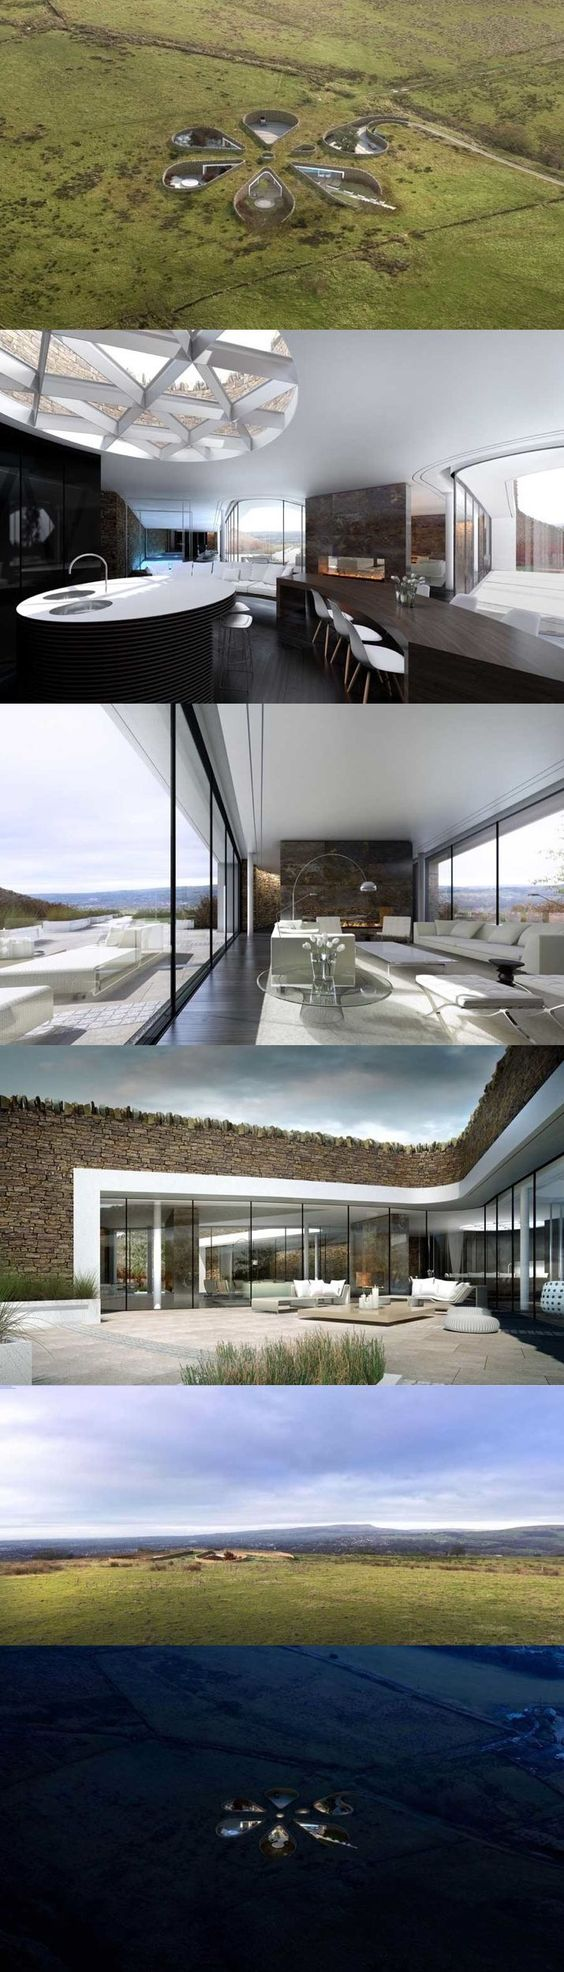 Coolest underground homes | Hometone : A Complete guide to home ...